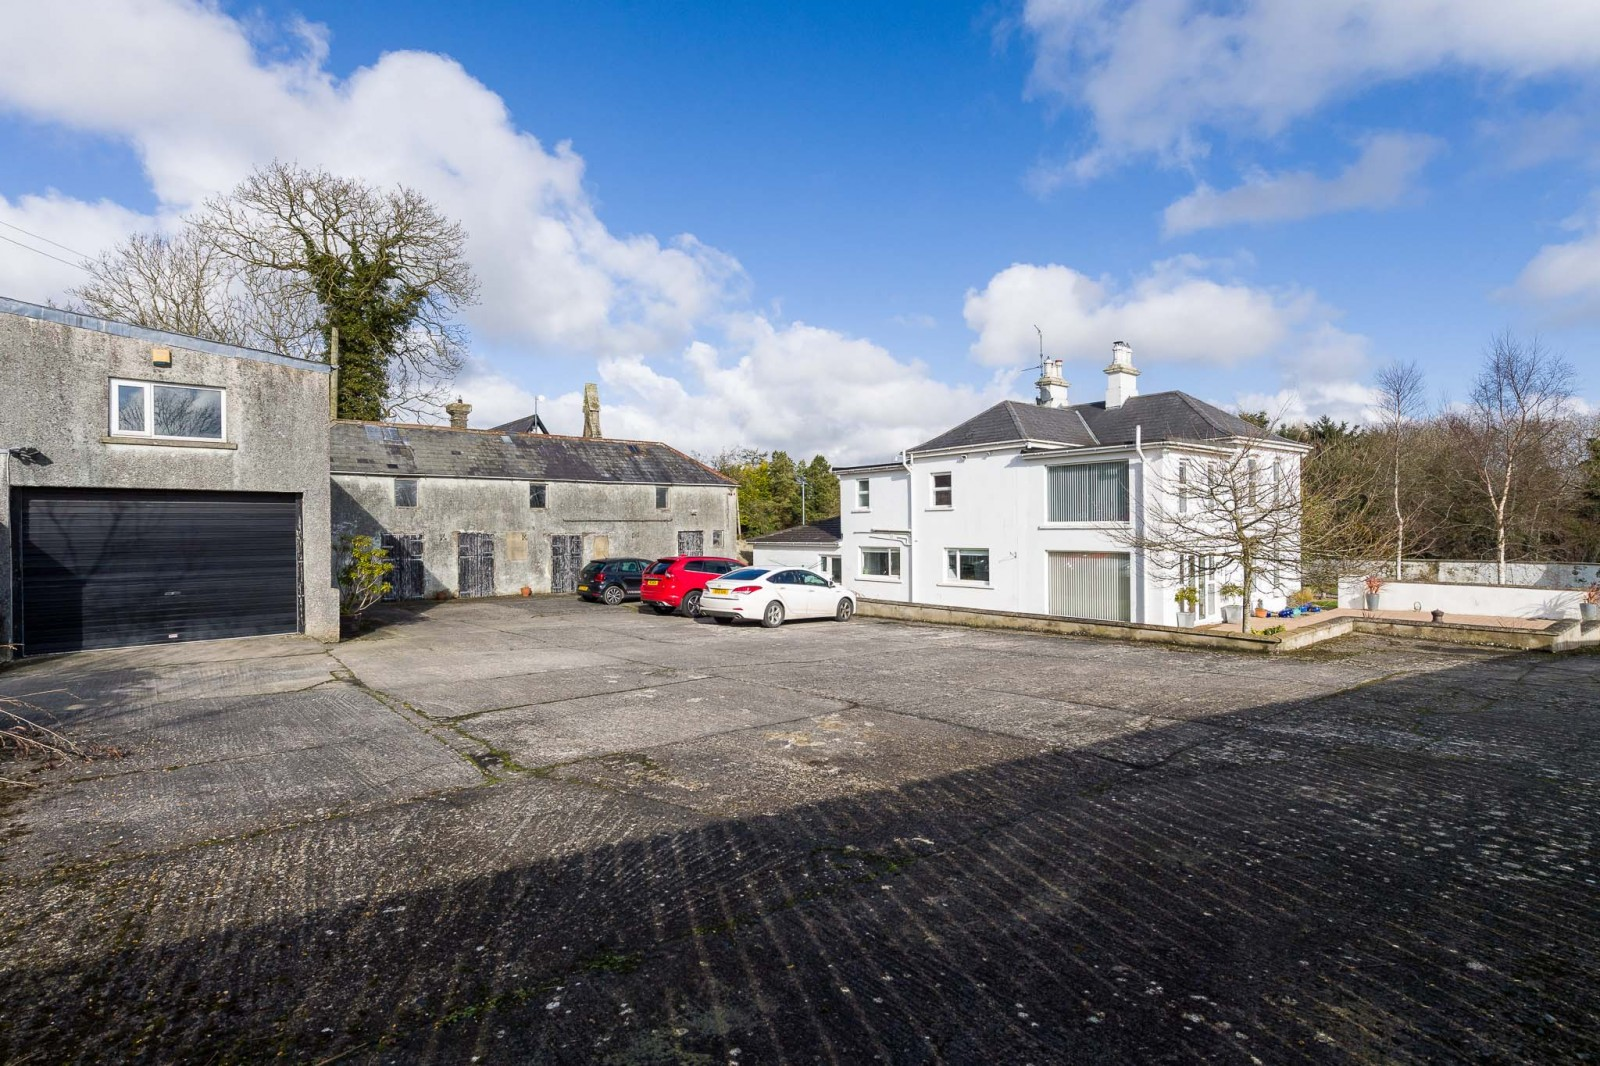 79 Carrickmannon Road